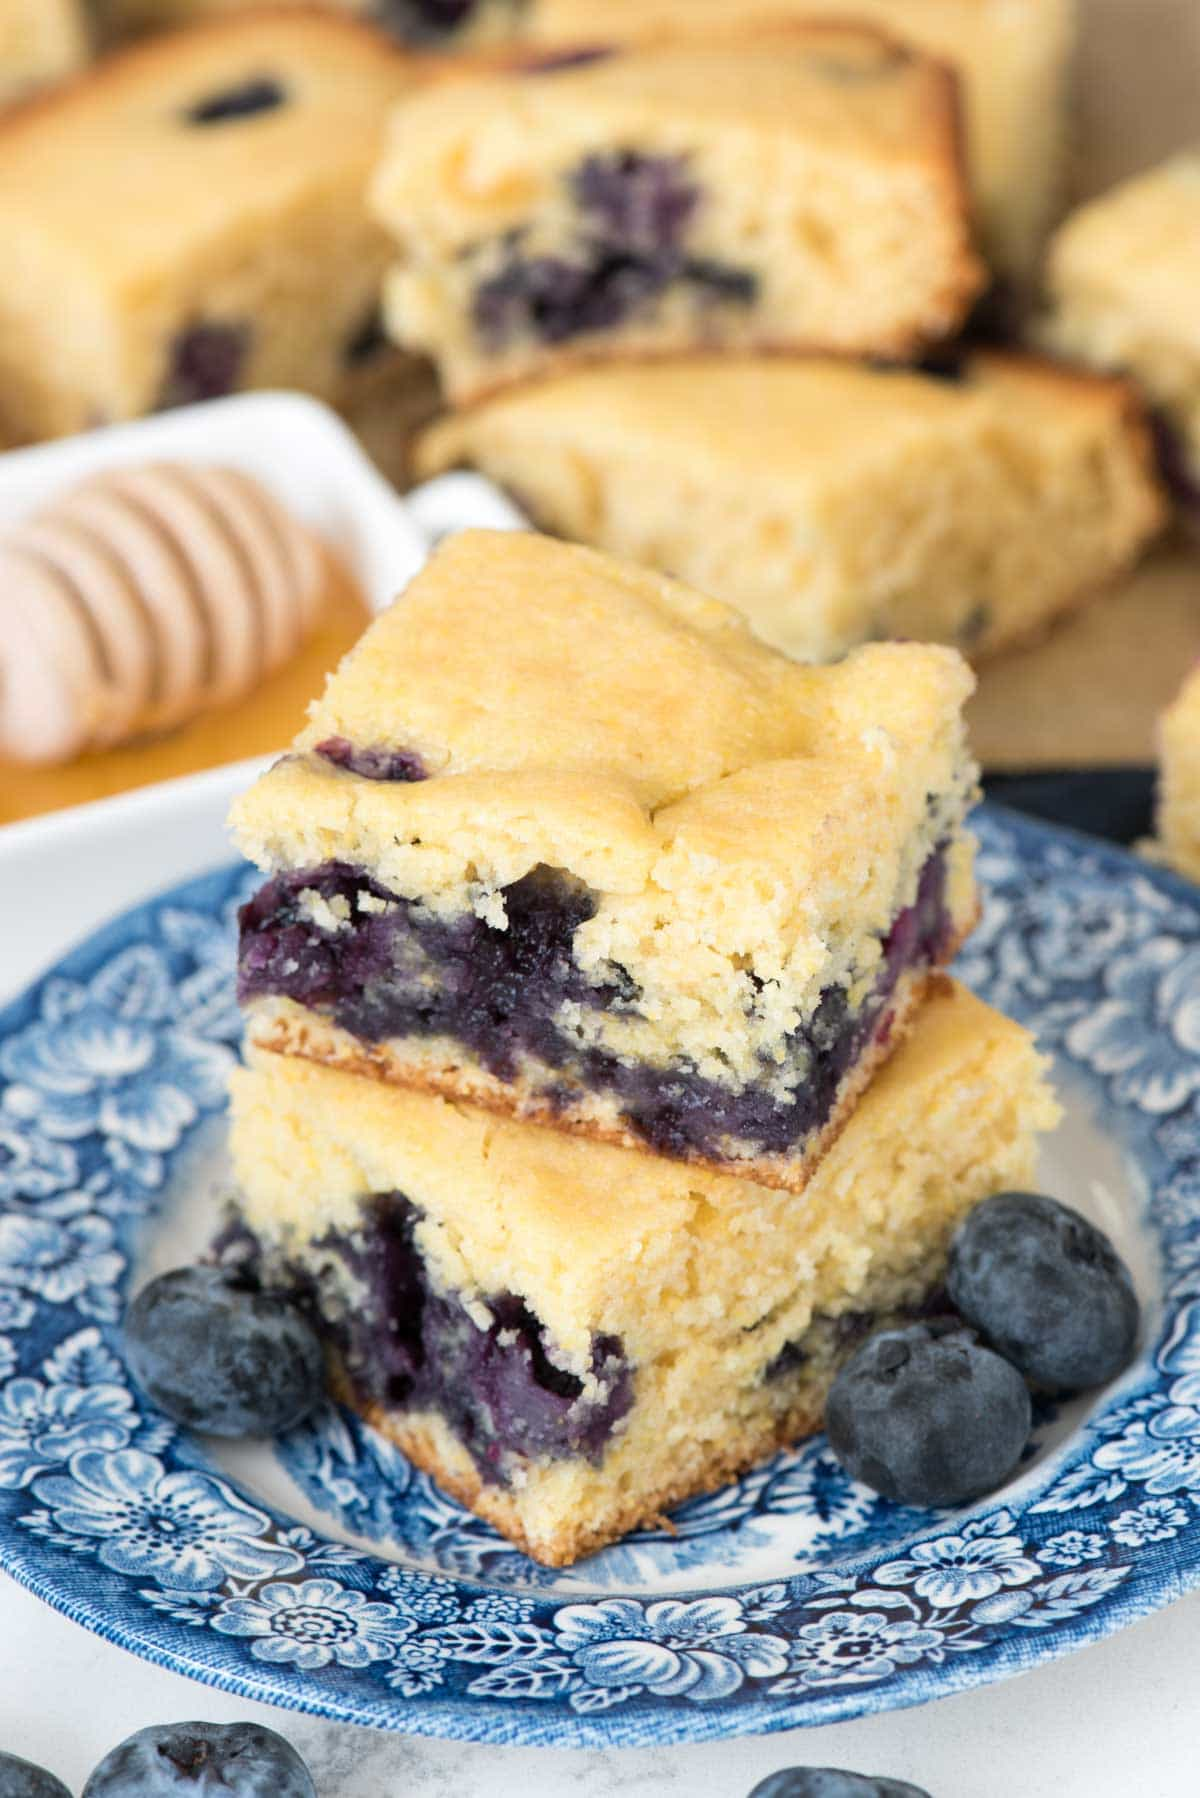 Blueberry Cornbread on a blue serving plate with blueberries on the side.